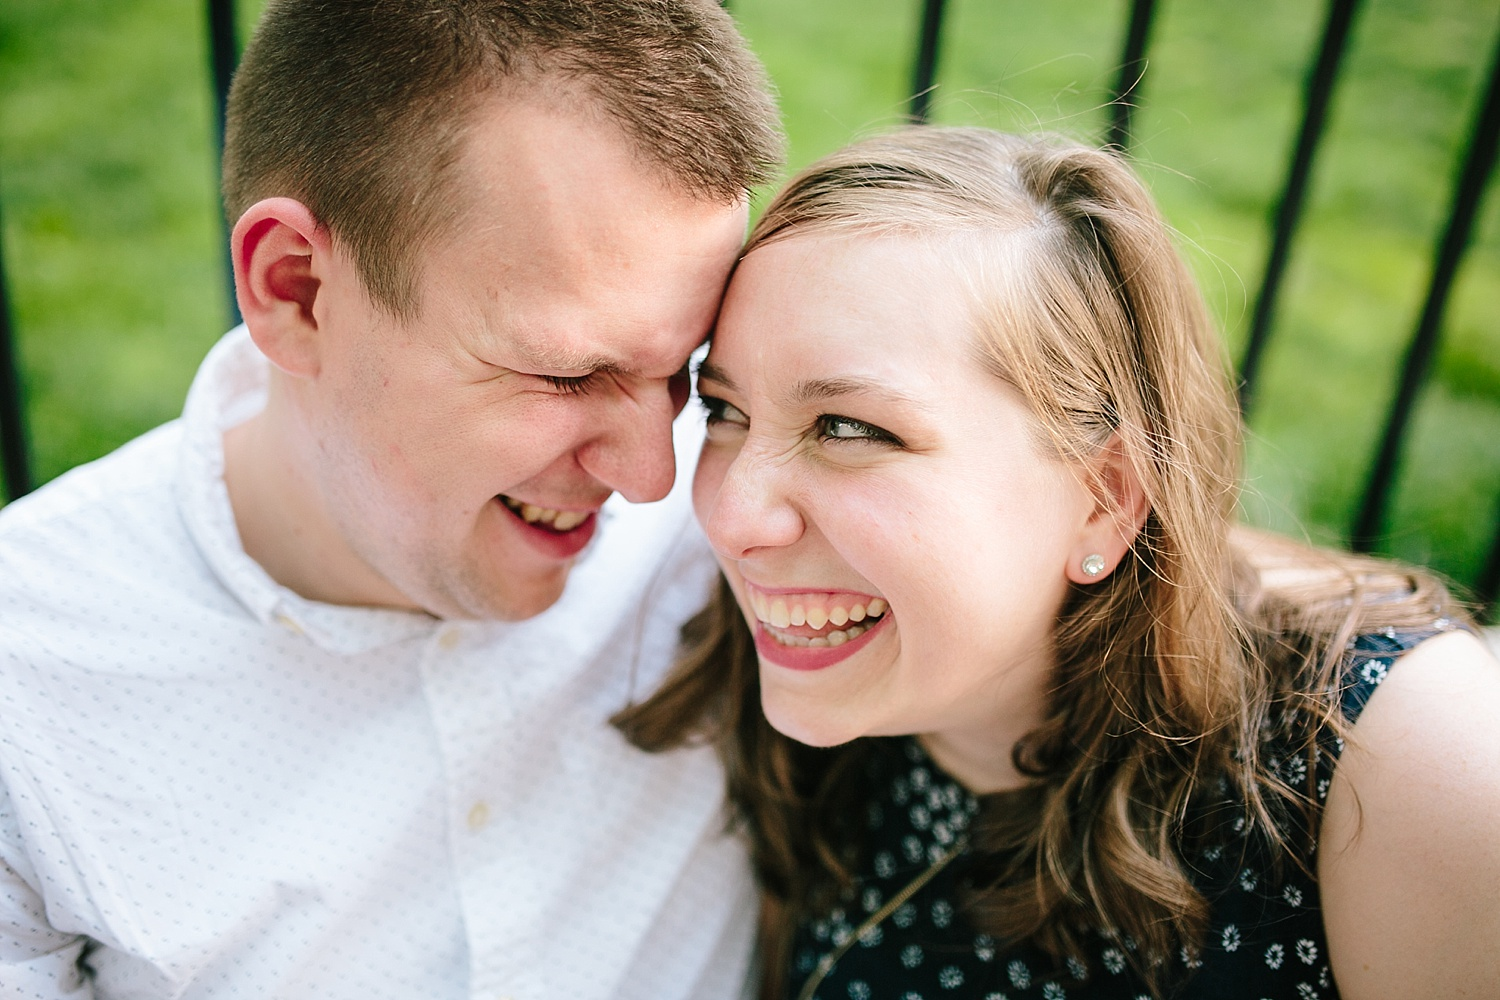 lizandbrandon_oldcity_philadelphia_elfrethsalley_engagement_session_image024.jpg